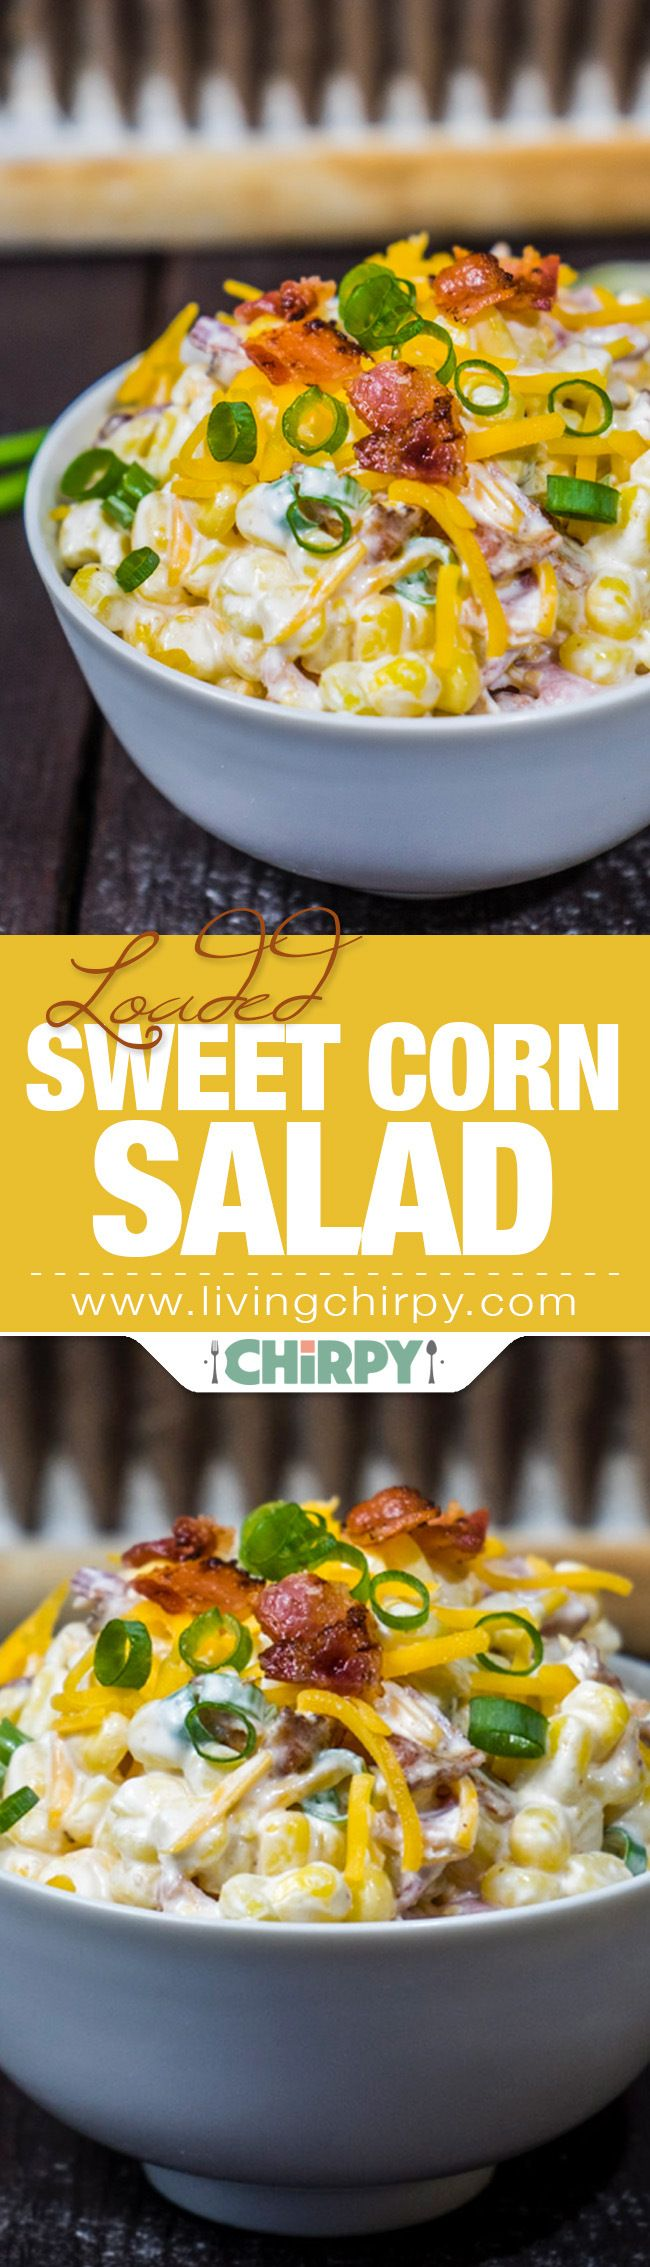 Loaded Sweet Corn Salad